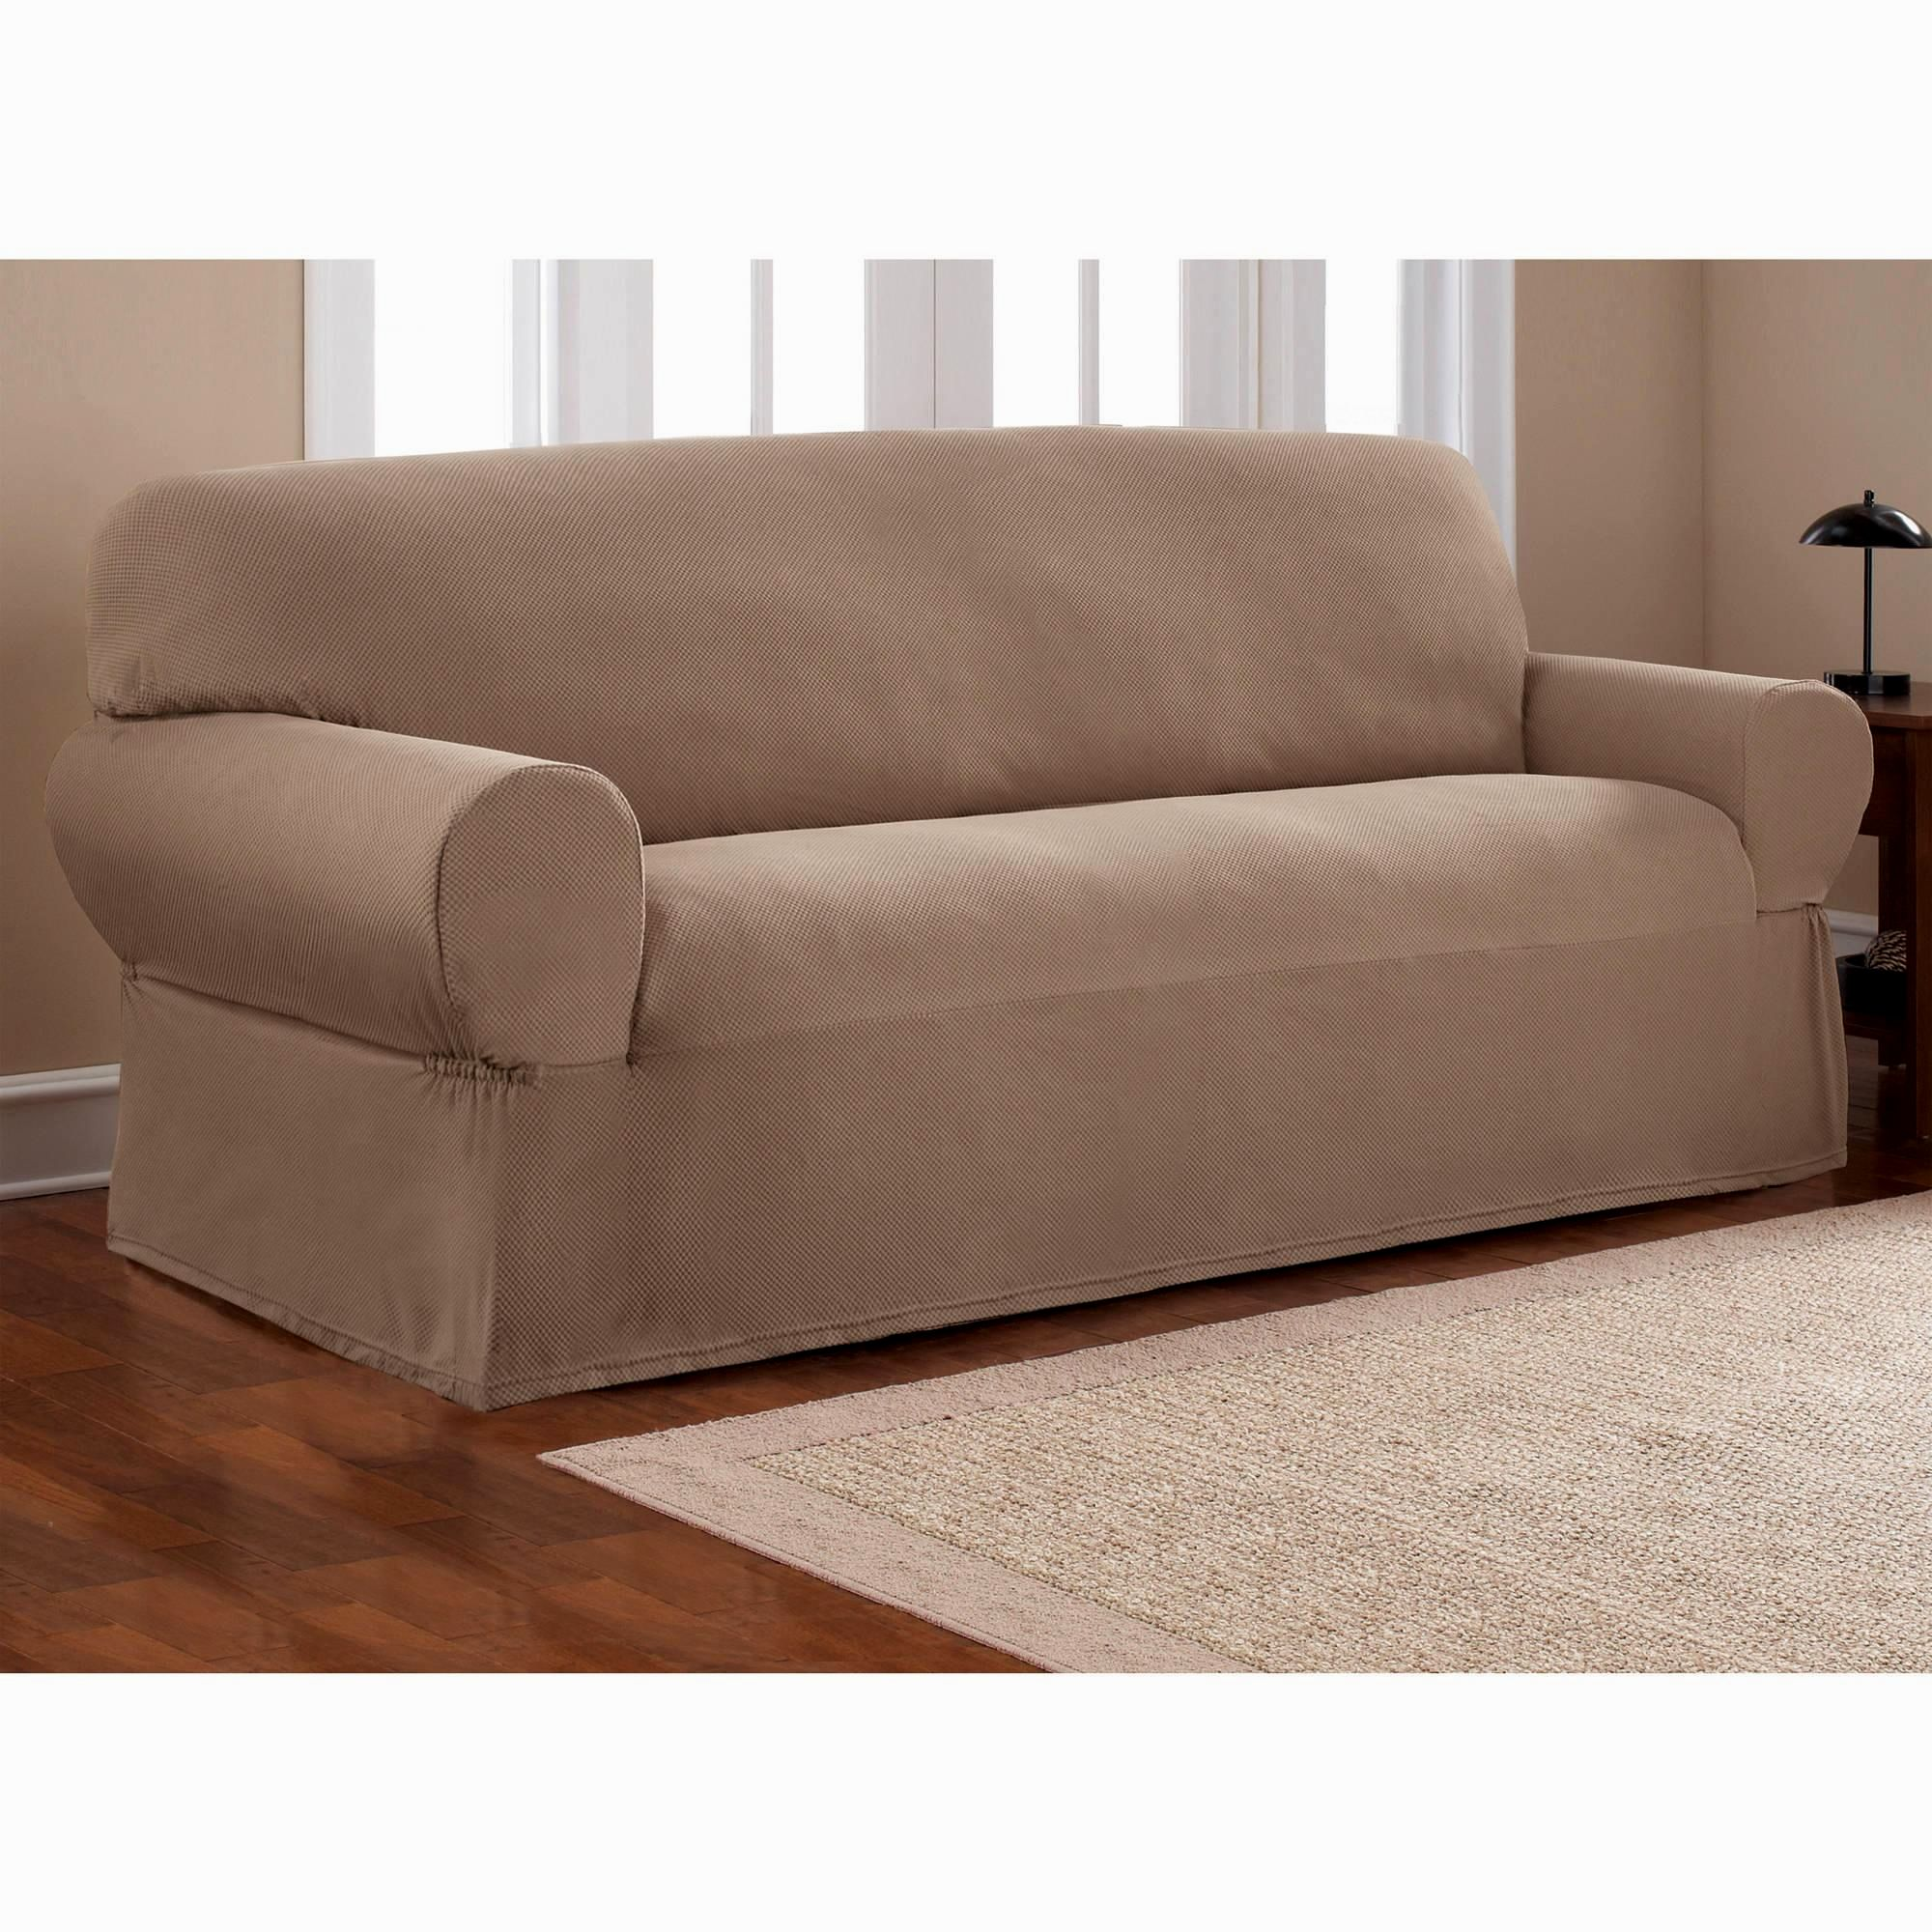 awesome luxe sofa slipcover collection-Contemporary Luxe sofa Slipcover Model